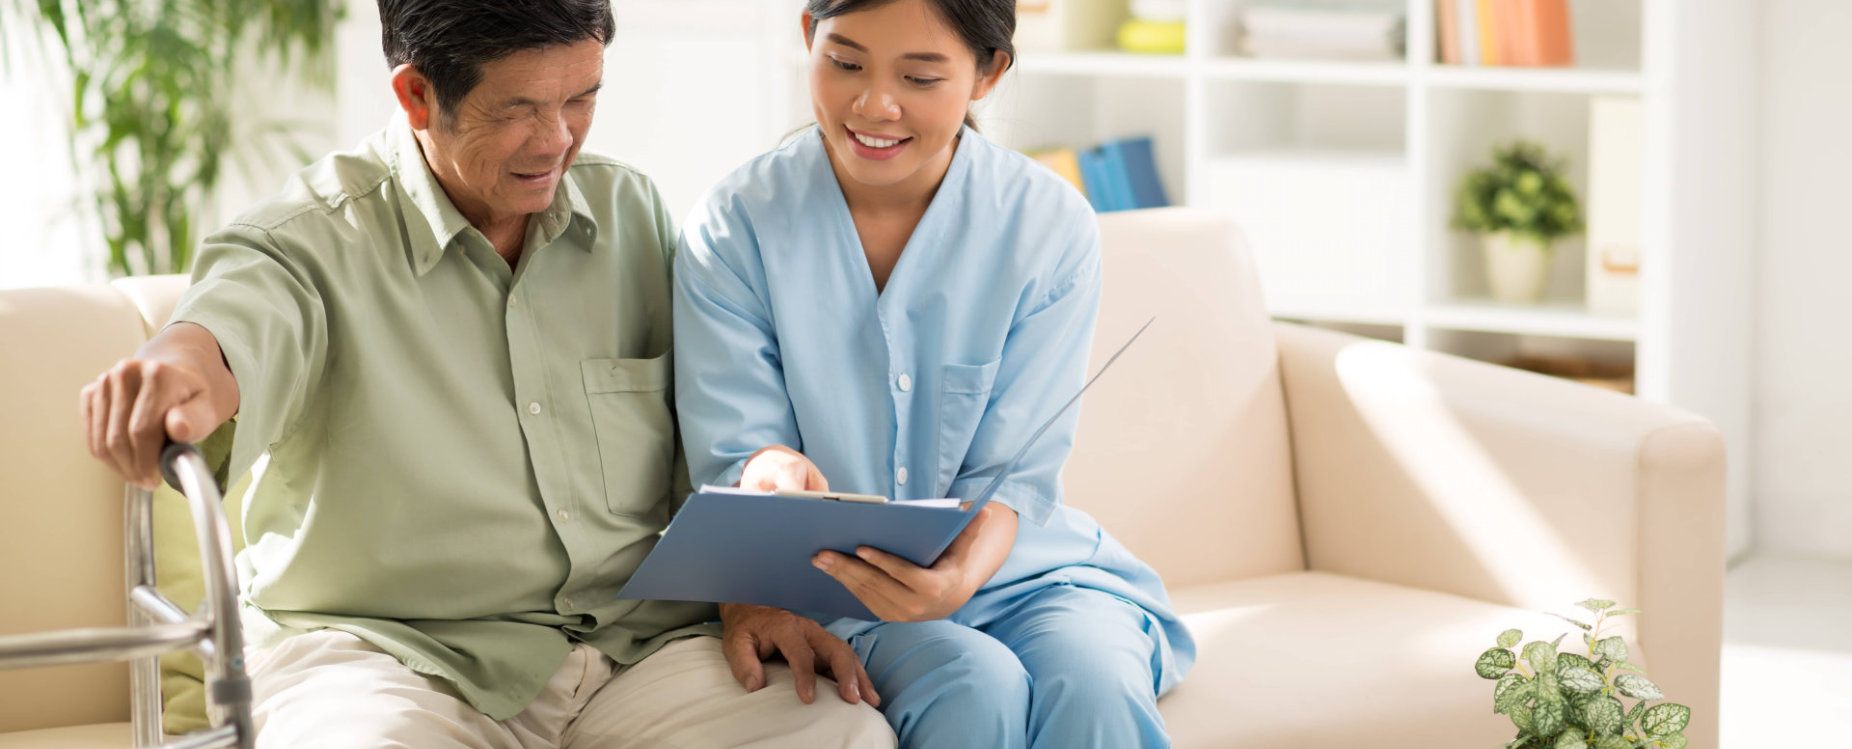 caregiver and senior man reading medical results